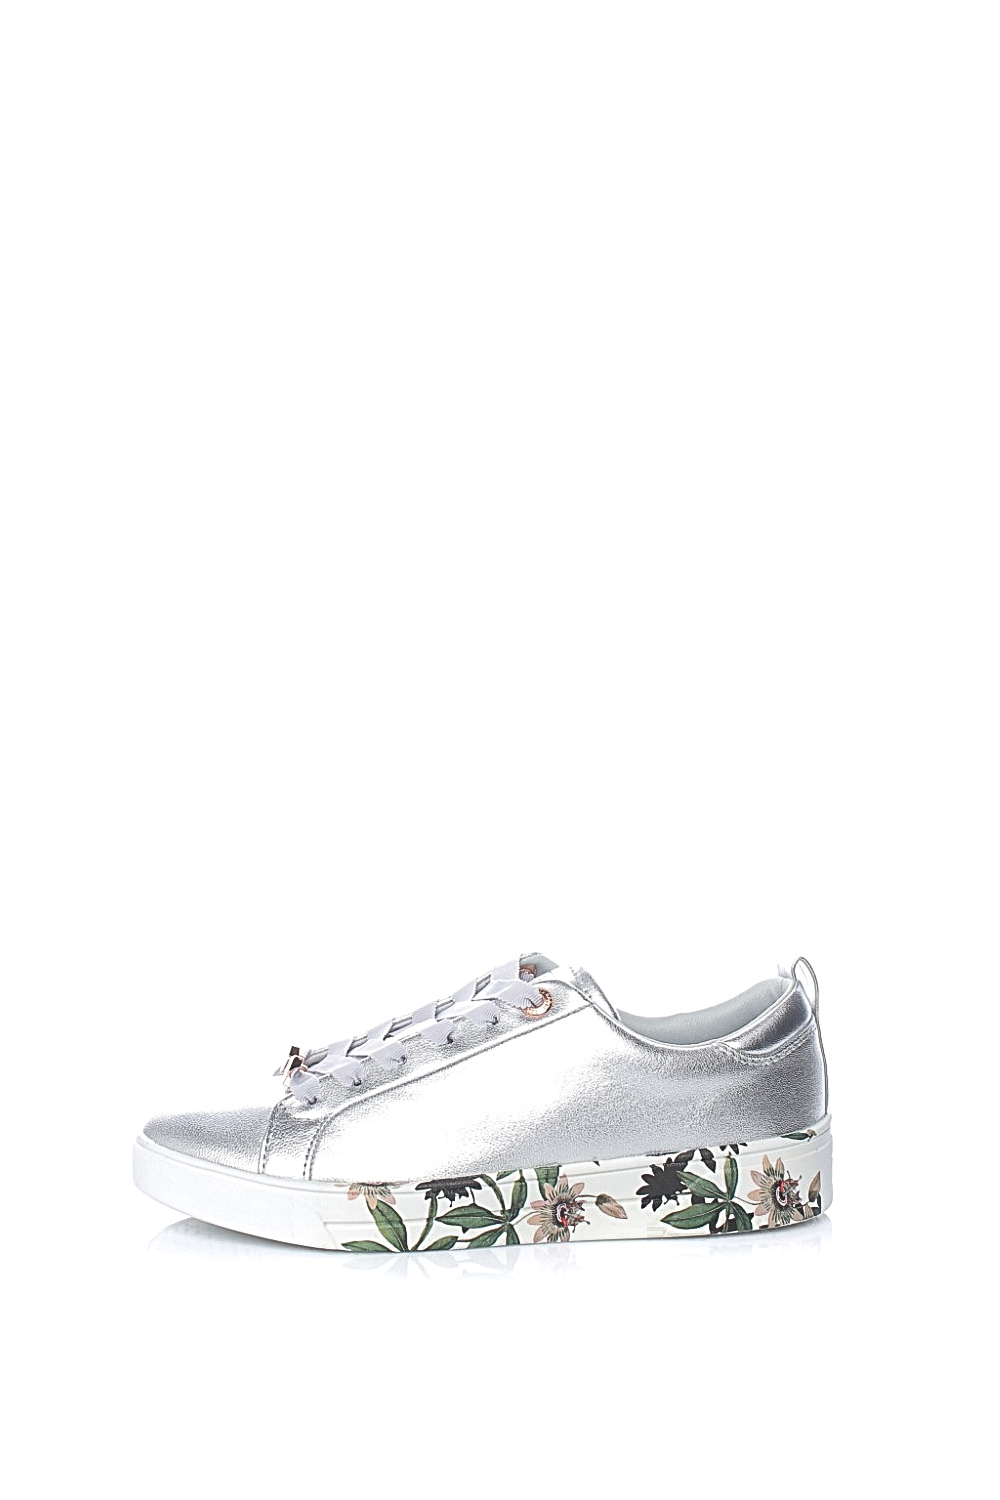 a4da1cb79f1 Collective Online TED BAKER – Γυναικεία sneakers TED BAKER ROULLY ασημί  απόχρωση